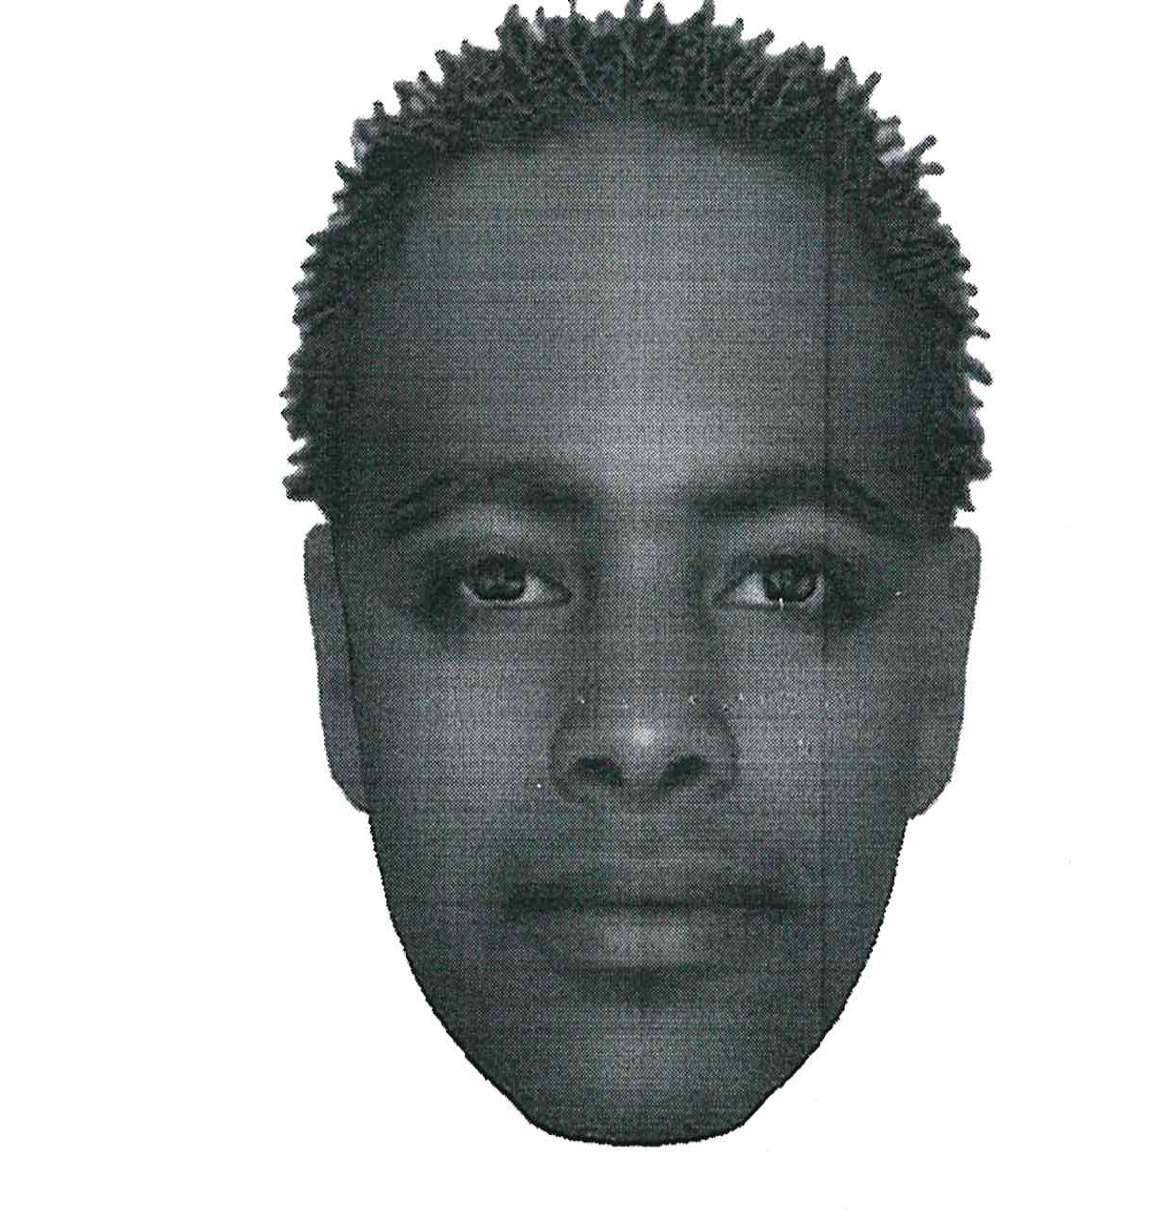 If you recognise the suspect depicted in the attached identikit which was compiled by a facial composition expert, kindly contact Crime Stop on 08600 10111 as he is wanted for rape.